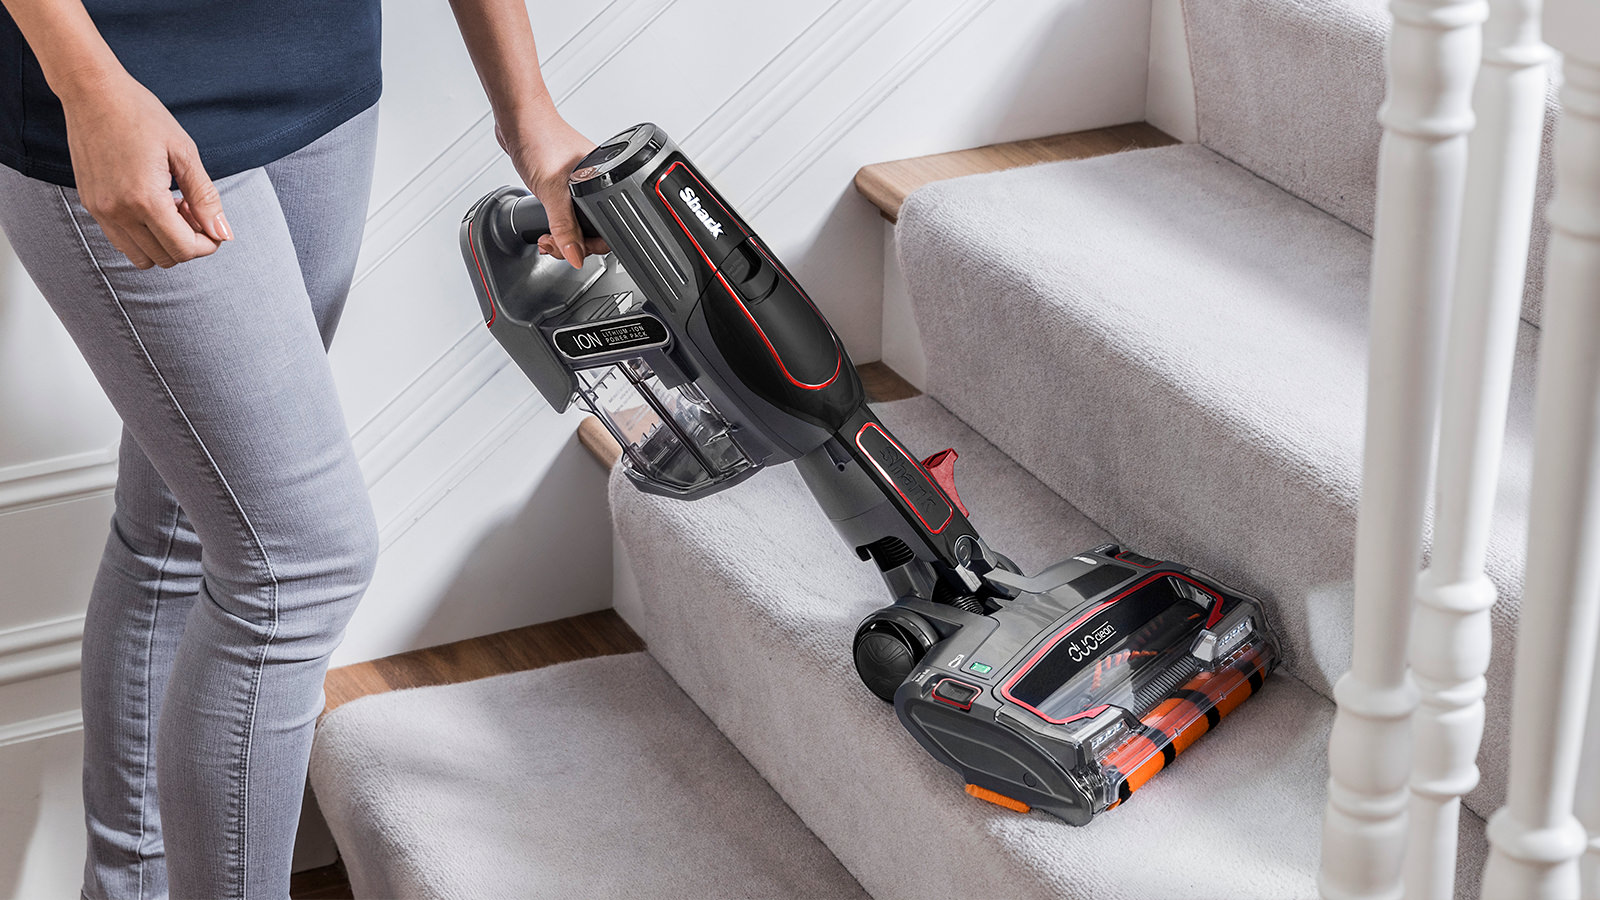 Cleaning Stairs with Shark Cordless Vacuum Cleaner IF260UKTH